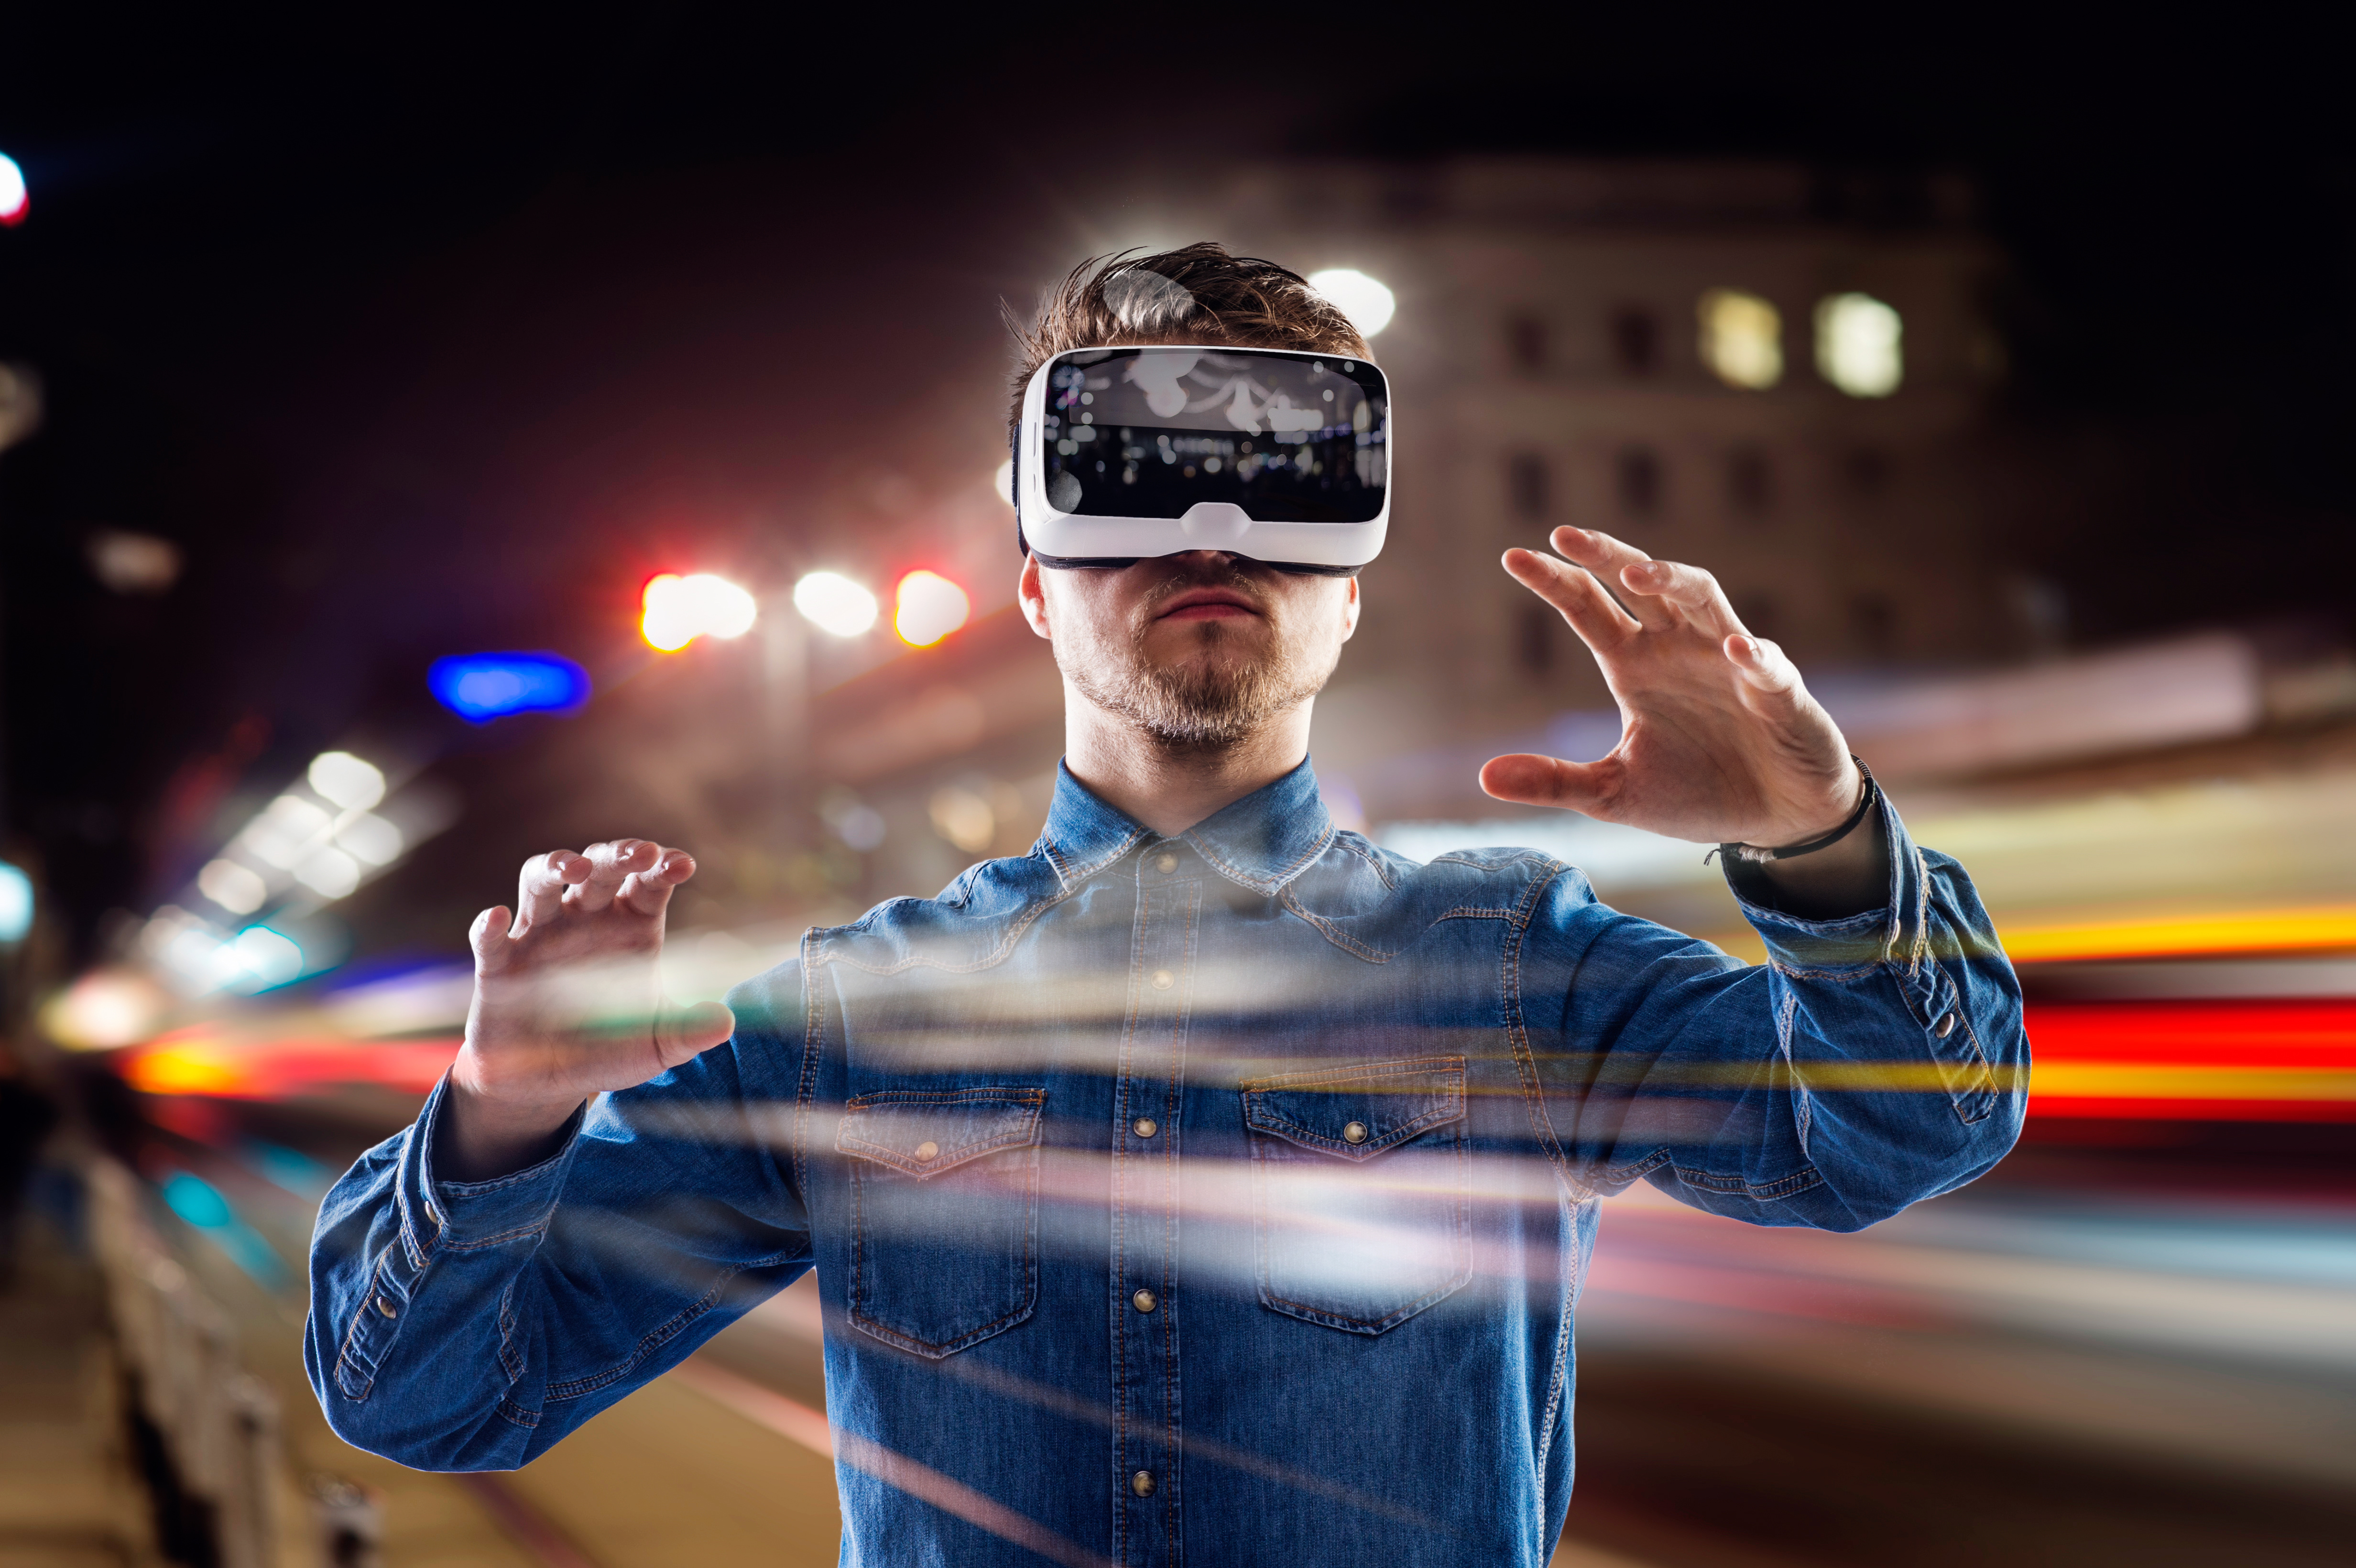 383d459cfd5 The Future of Virtual Reality for Business - Zipper SEO   Web Design ...